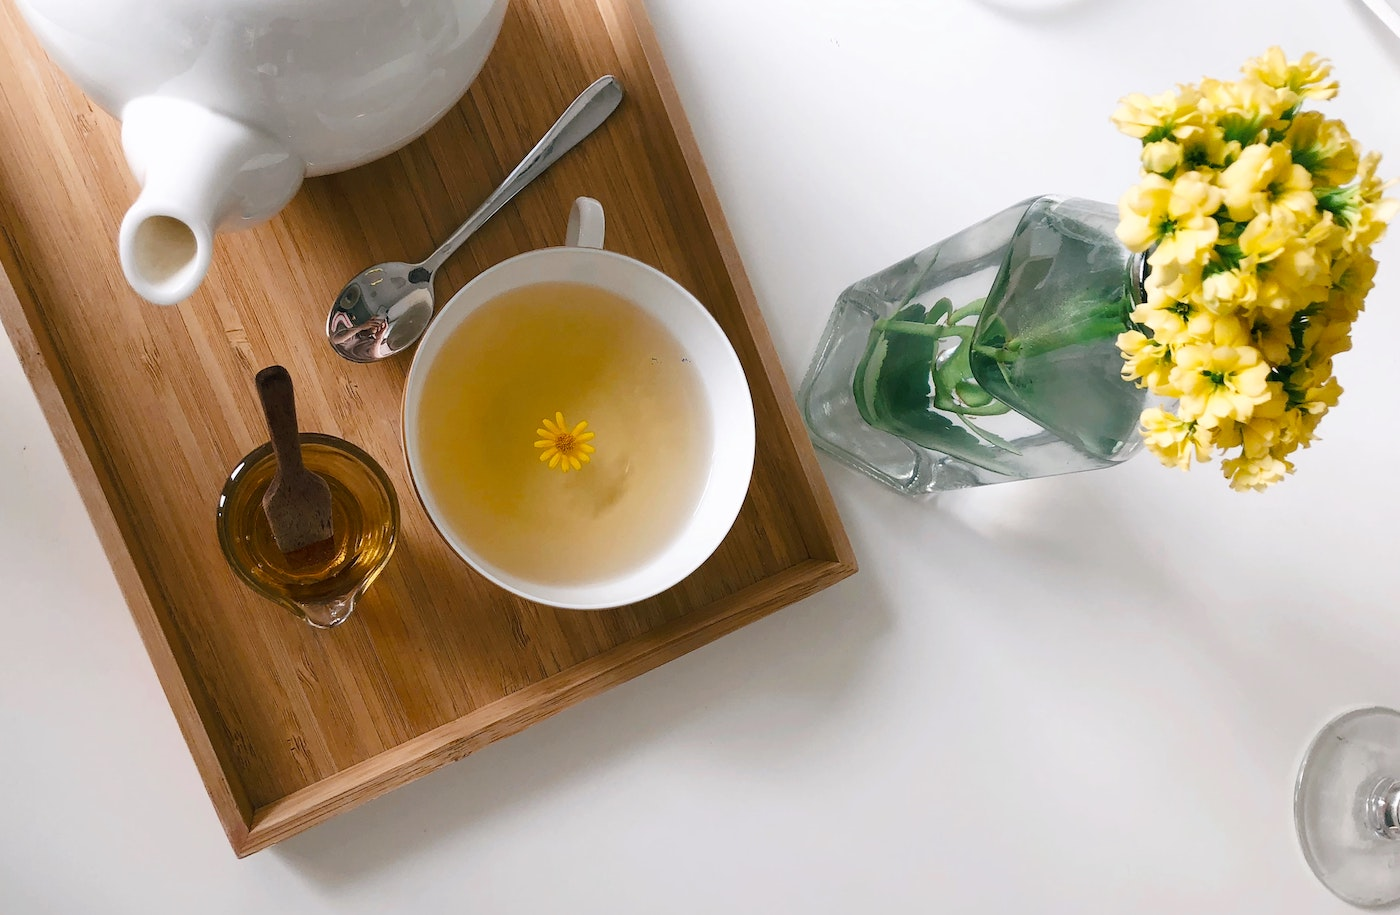 Tea on brown tray with yellow flowers